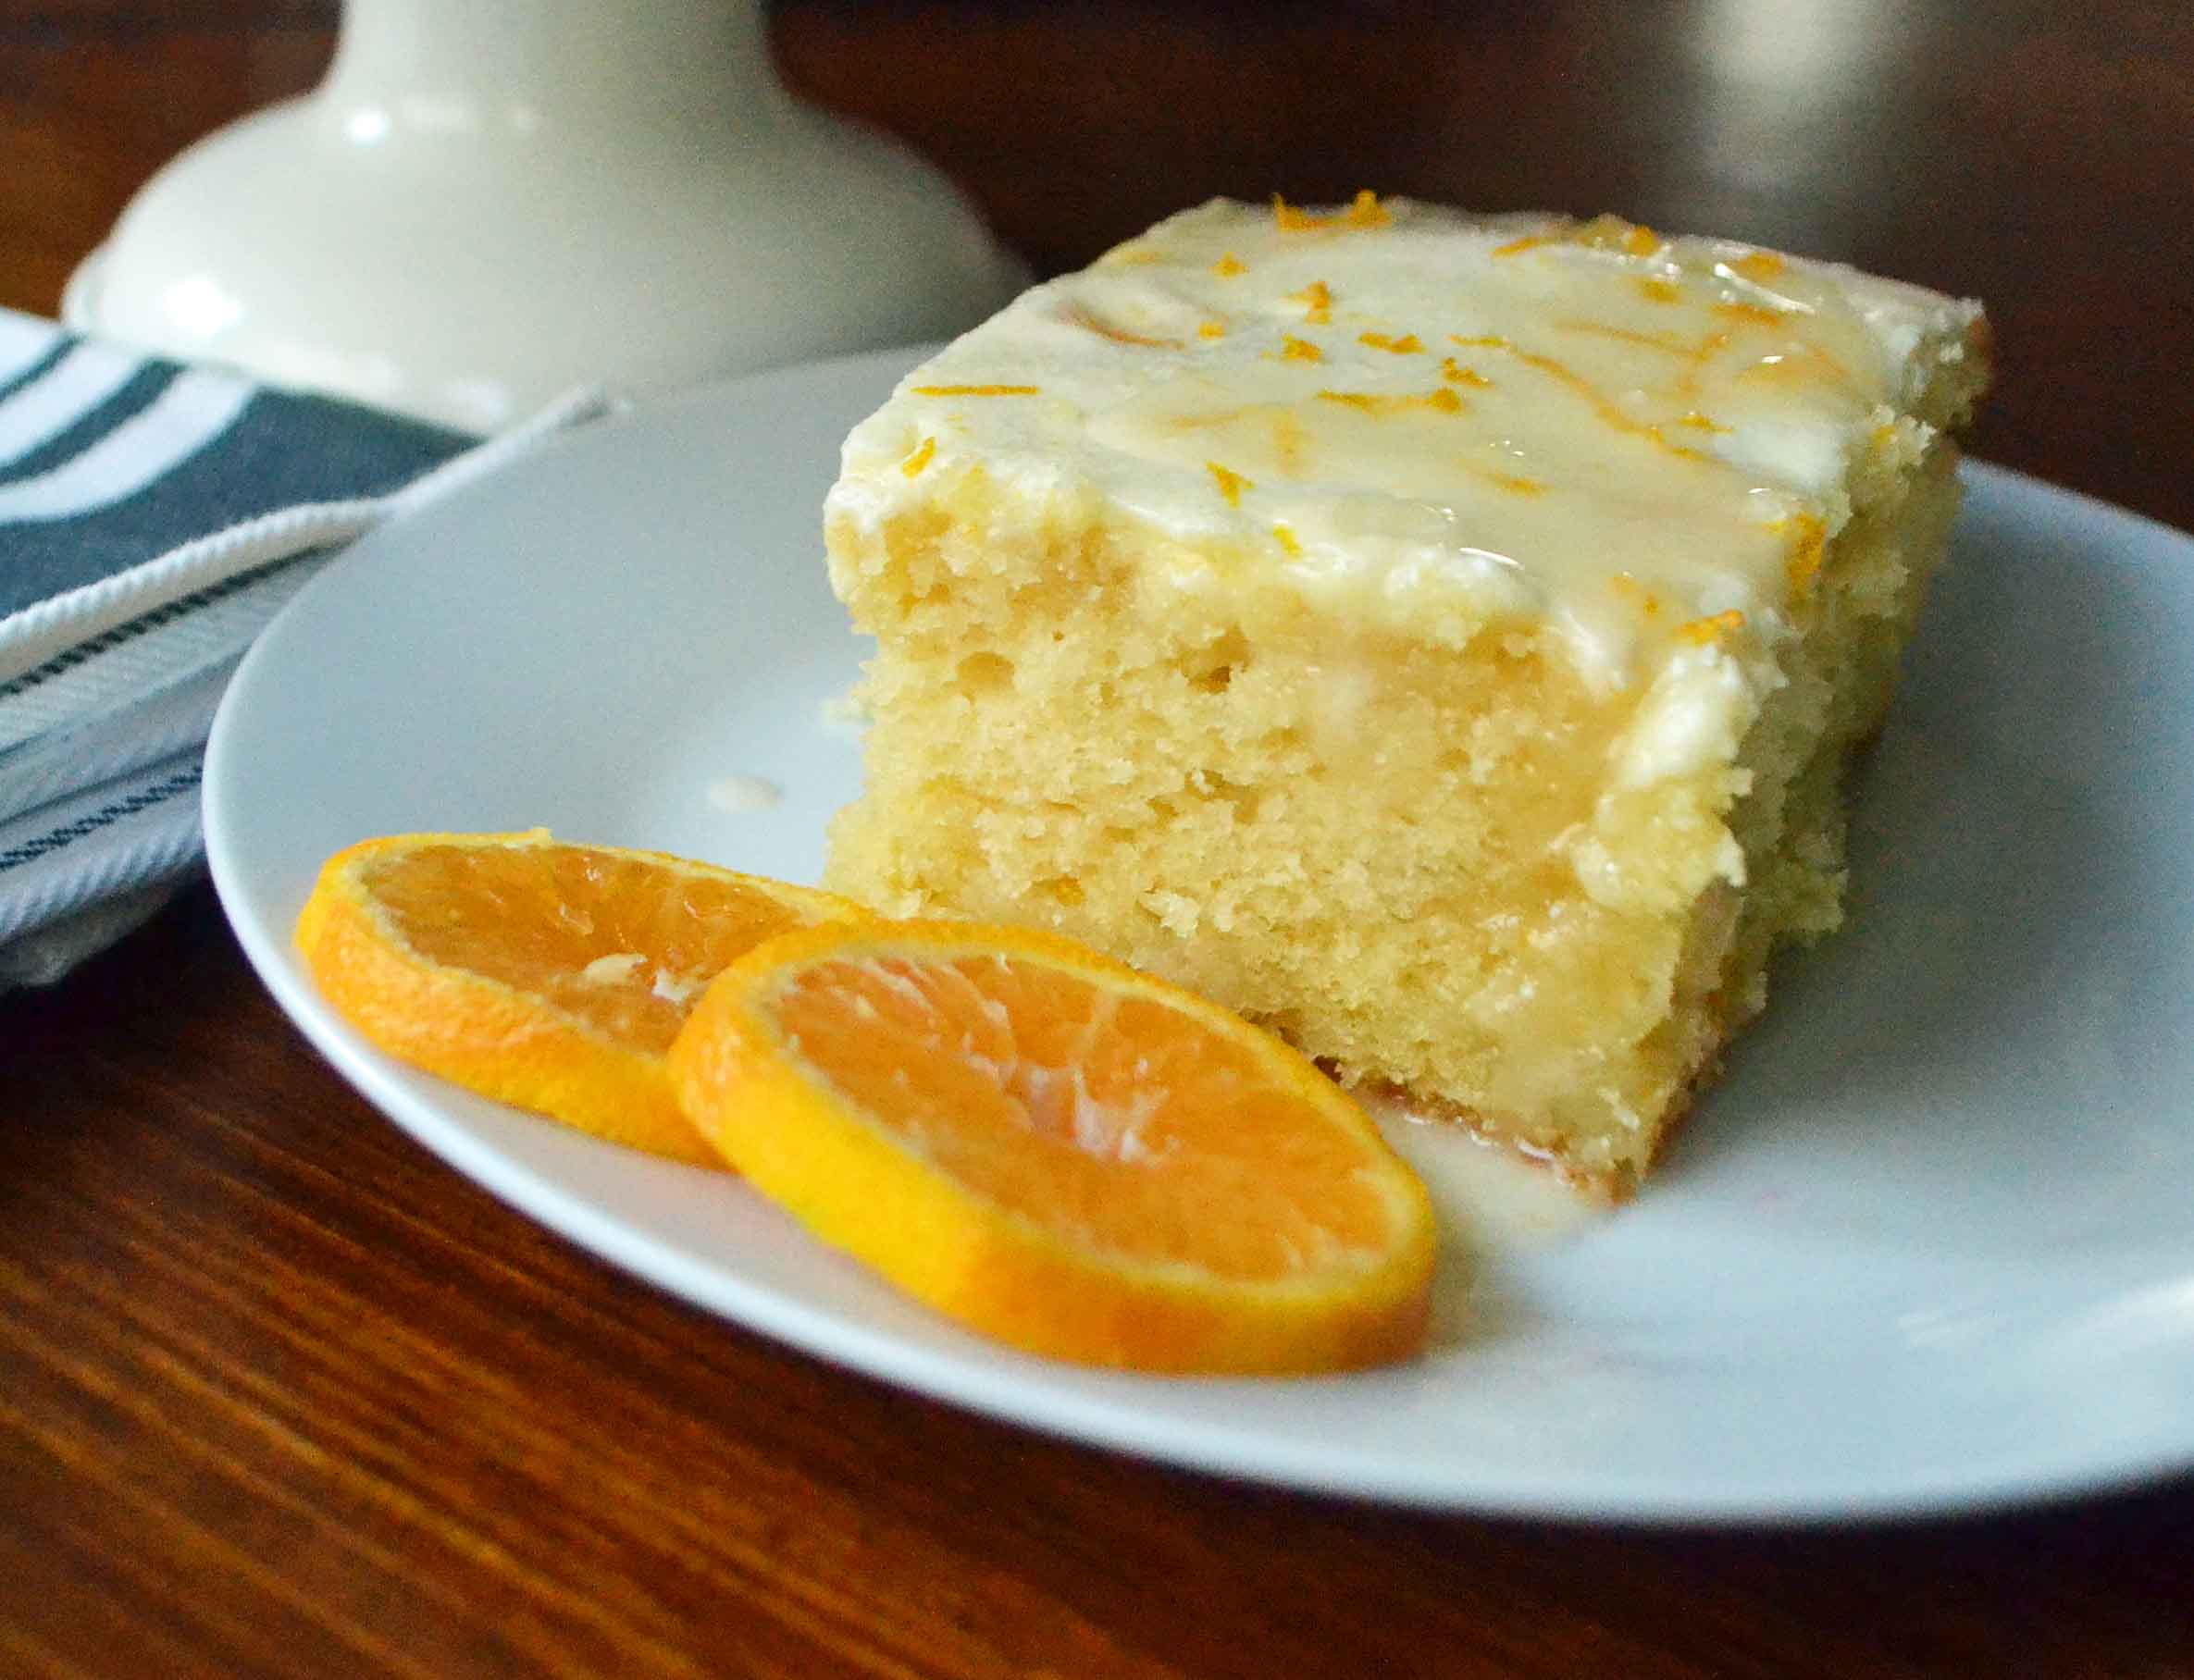 Orange Roll Breakfast Cake. A sweet orange cake with three layers of flavor -- a moist cake topped with a buttery orange topping and a sweet orange cream cheese glaze. The most amazing orange cake! Perfect for a holiday breakfast or dessert. www.modernhoney.com. Plus a wonderful egg nog and ice cream drink recipe.